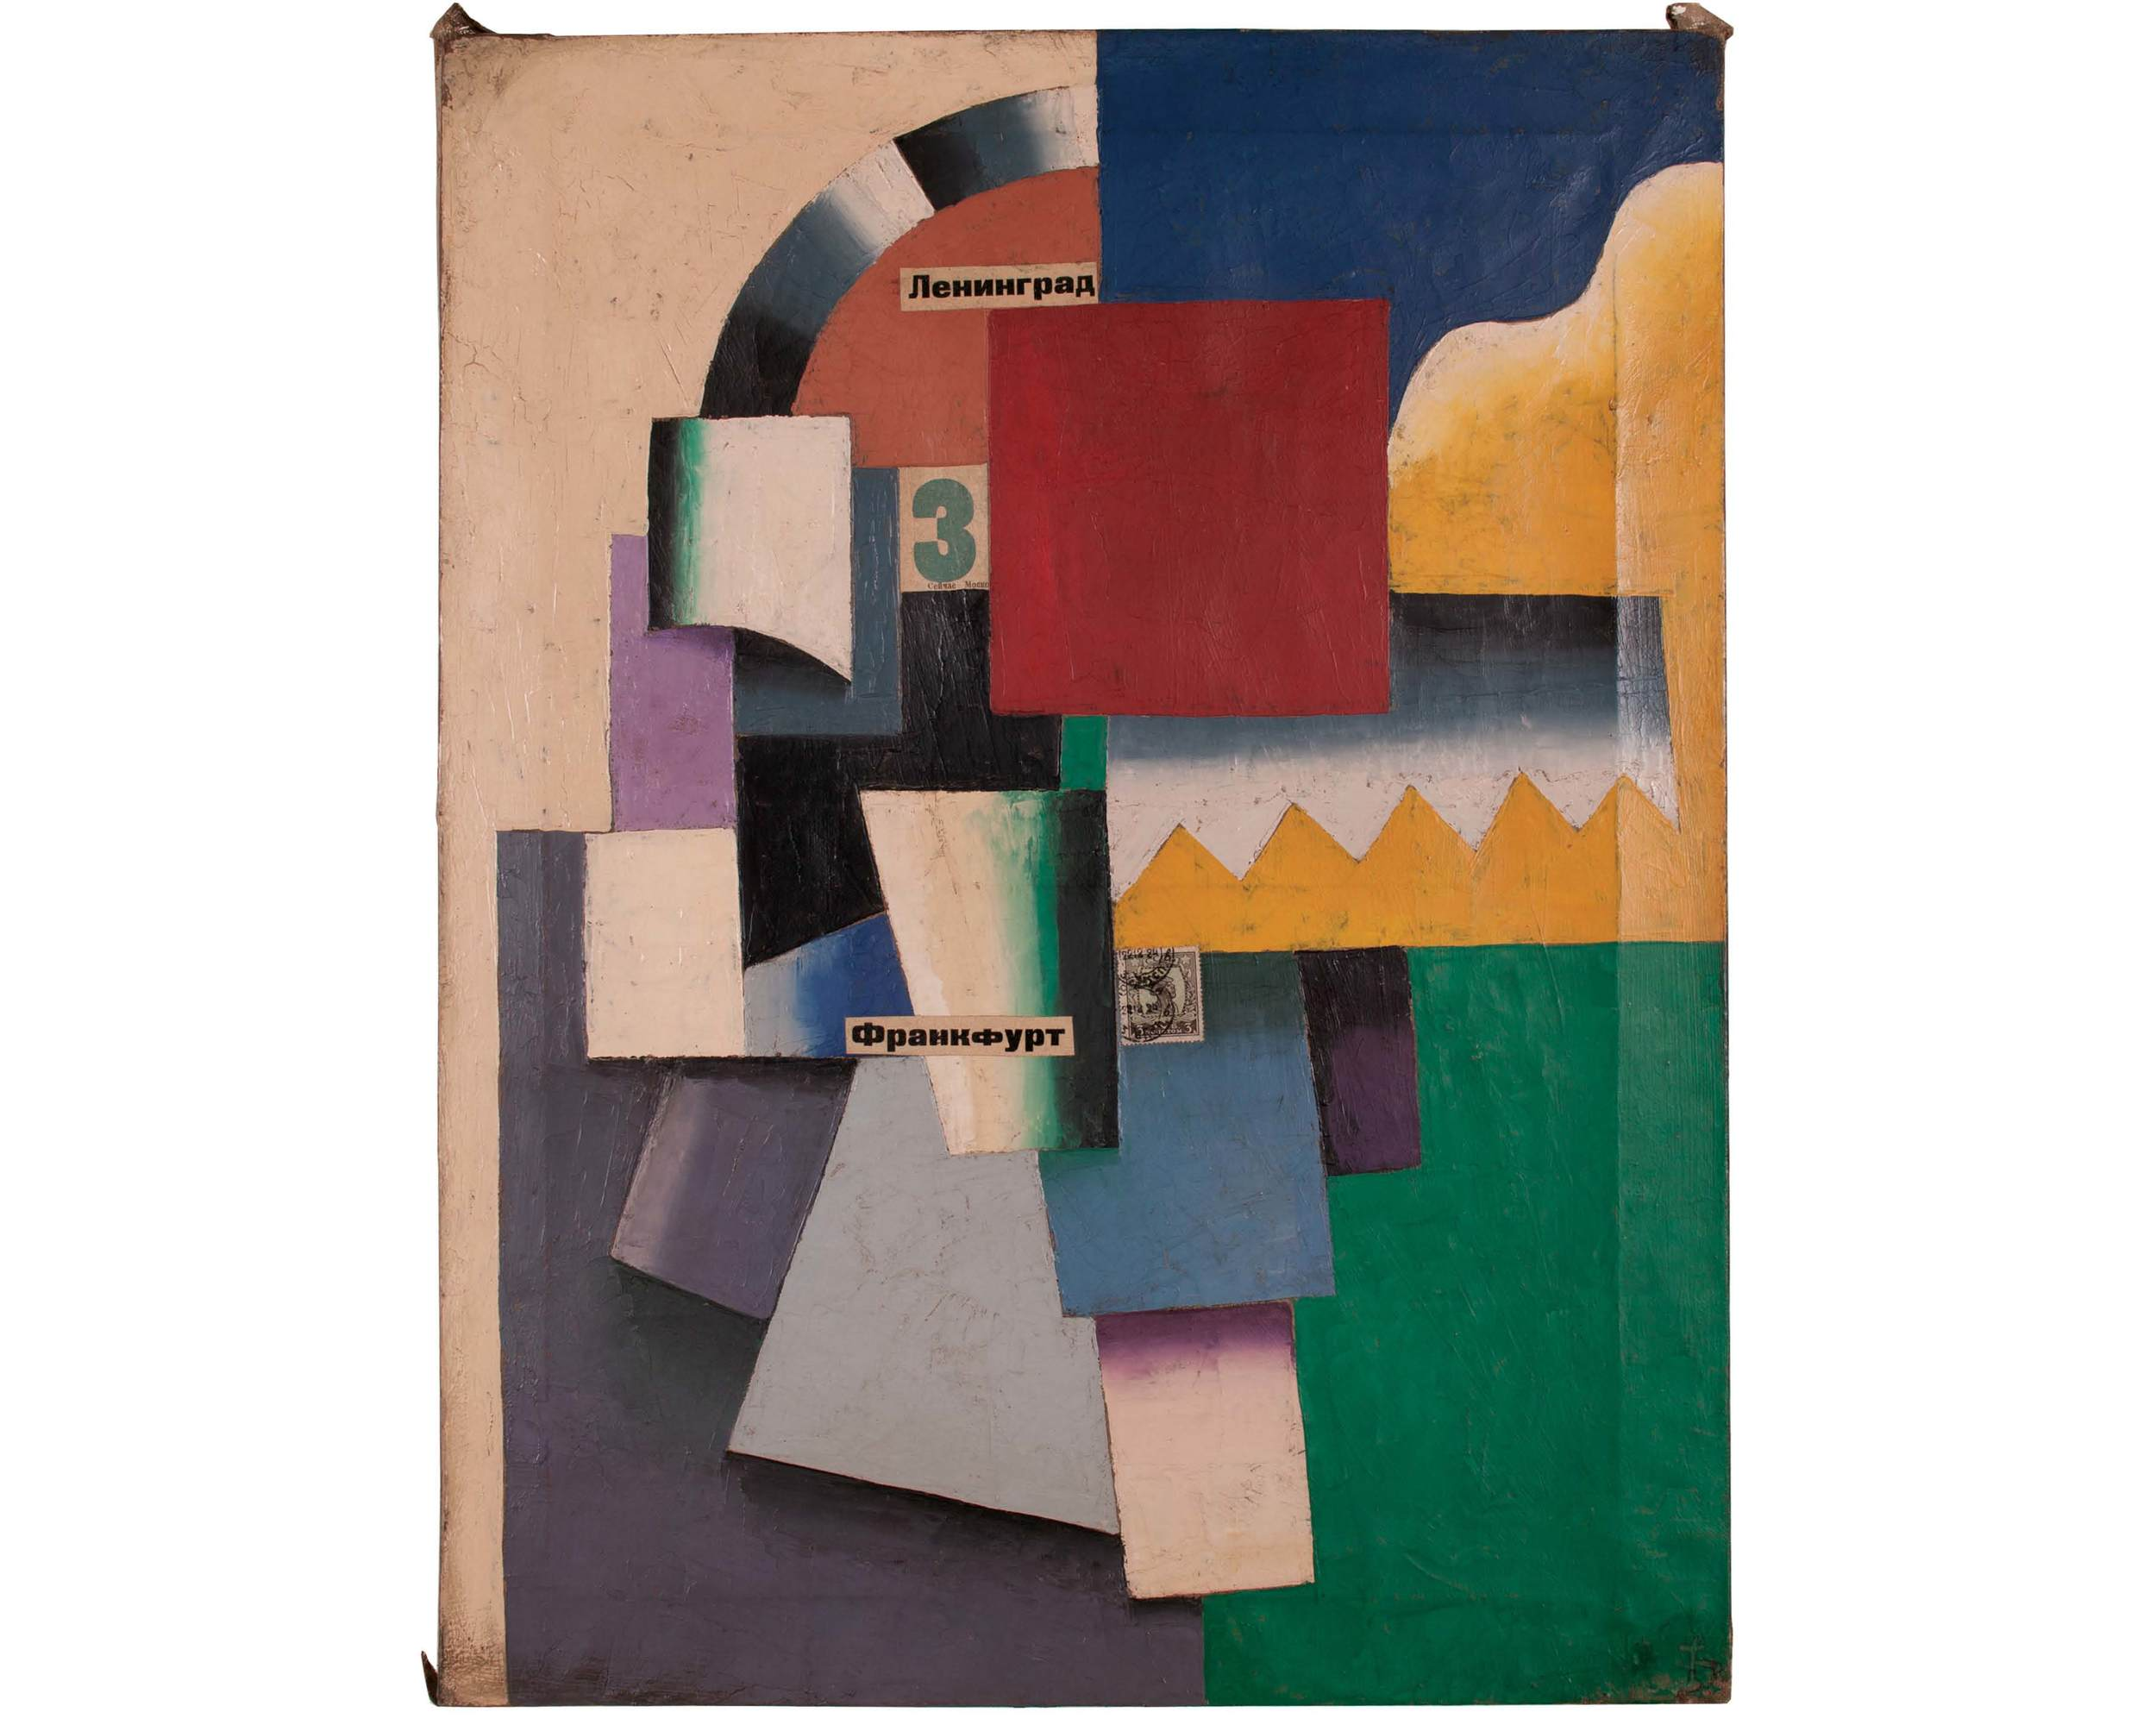 Unattributed. In the style of Kasimir Malevich.